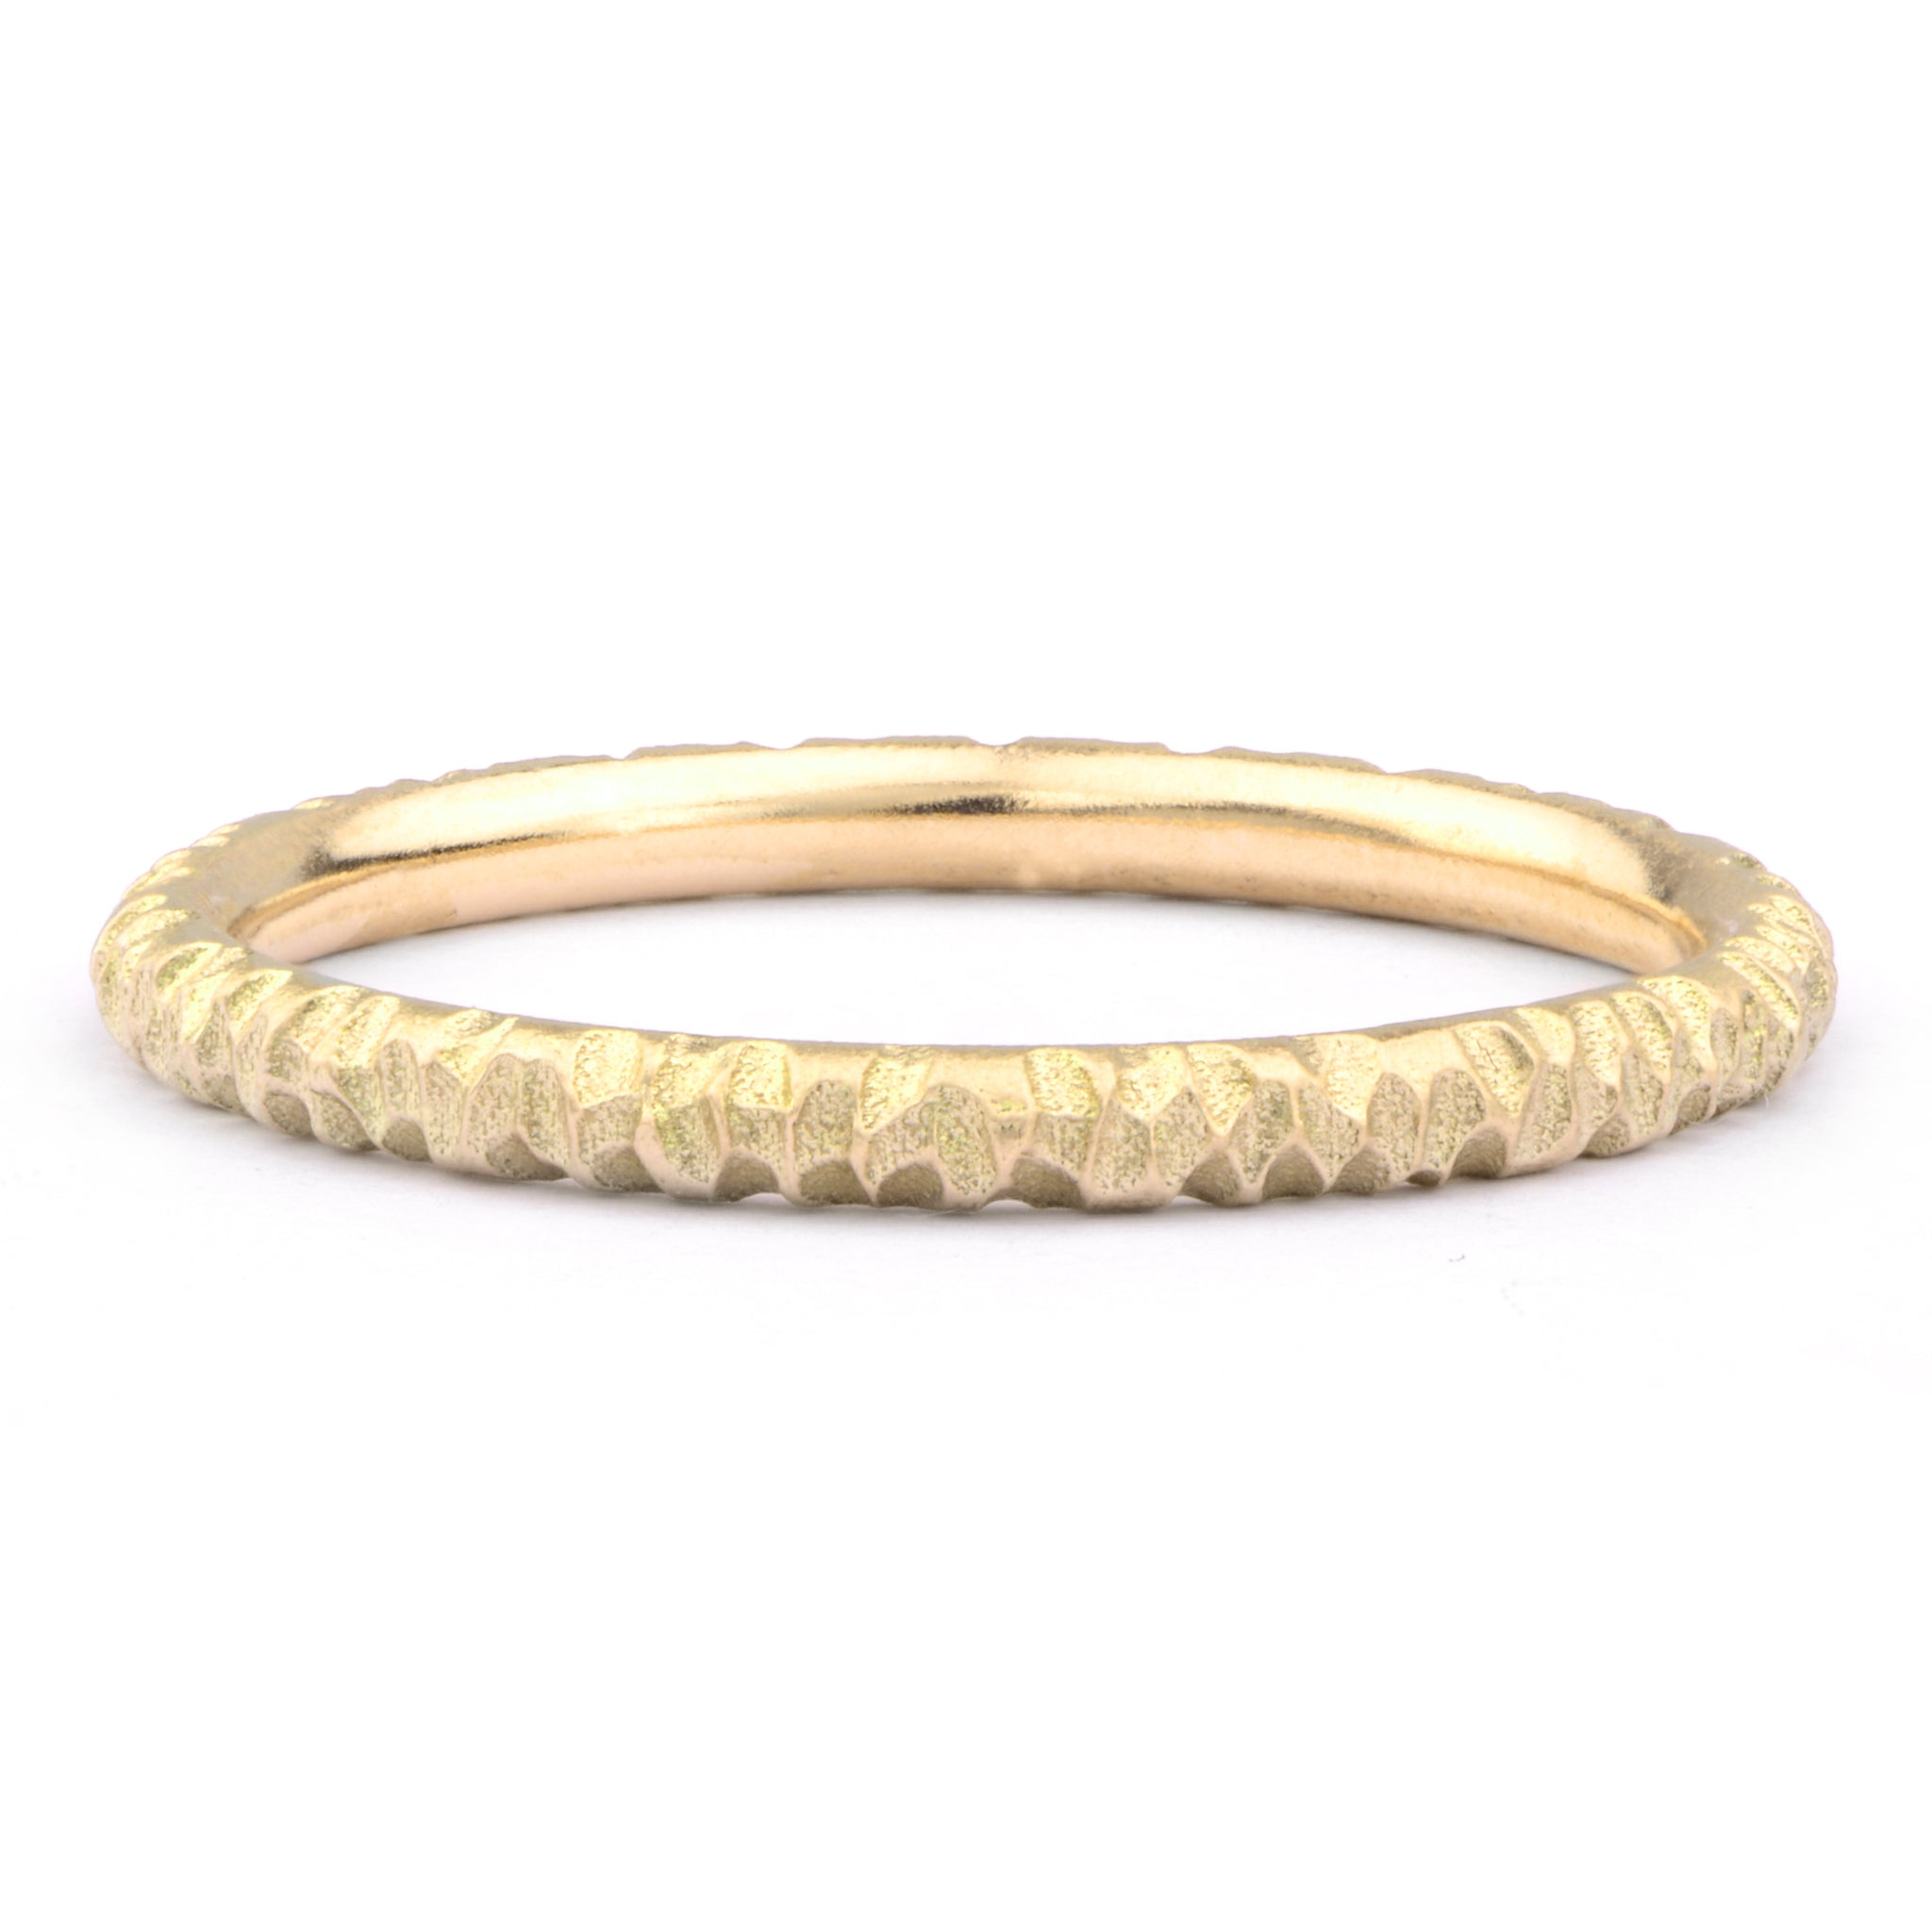 Textured 18ct Yellow Gold Wedding Band - James Newman Jewellery